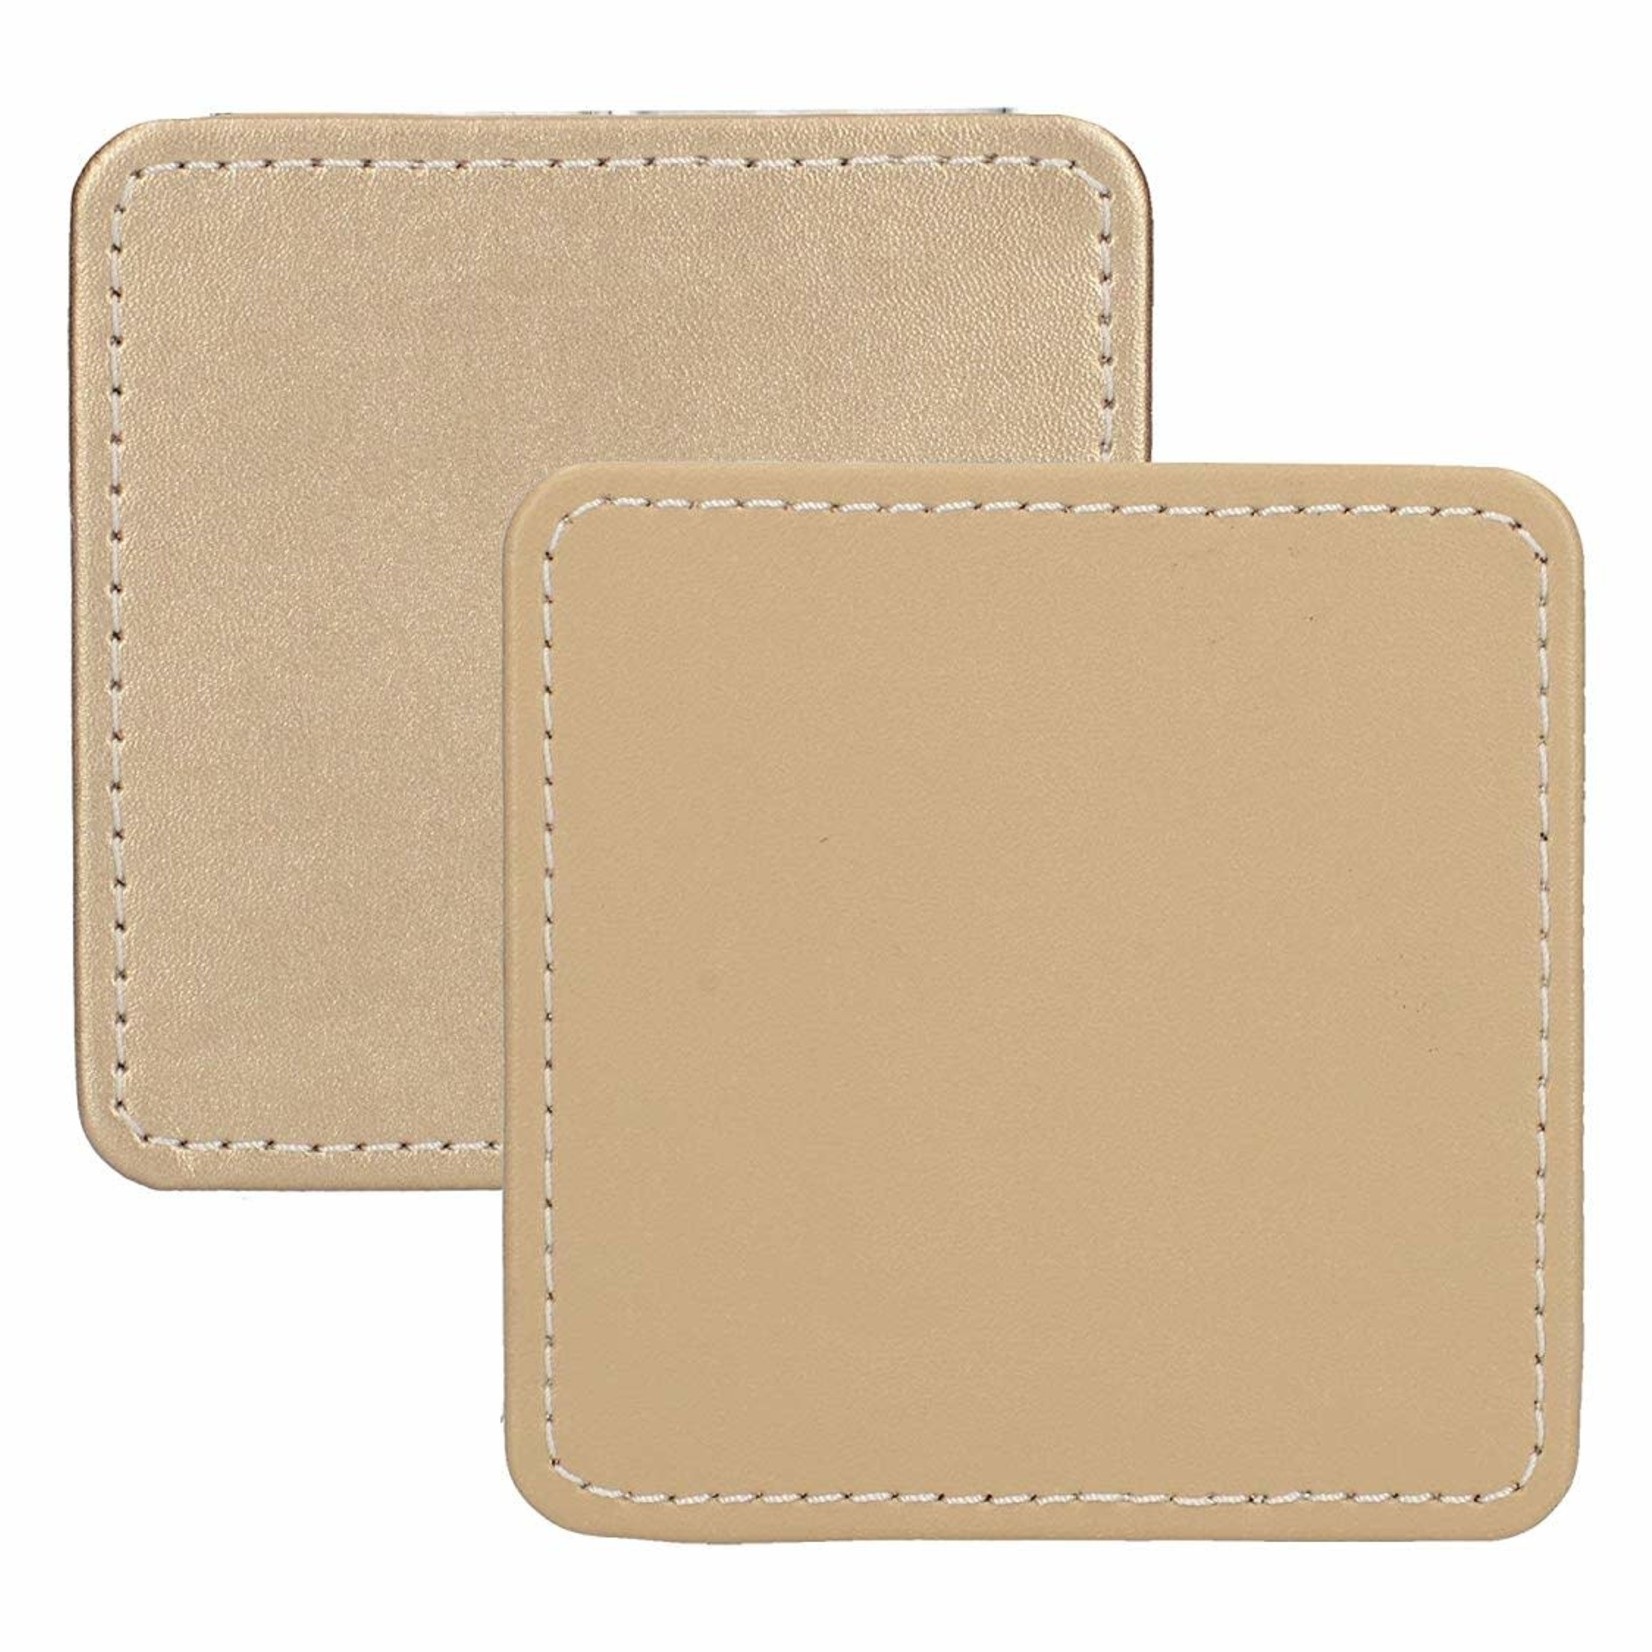 Kitchen Craft CREATIVE TOPS PREMIUM STITCHED FAUX LEATHER PACK 4 COASTERS METALLIC GOLD